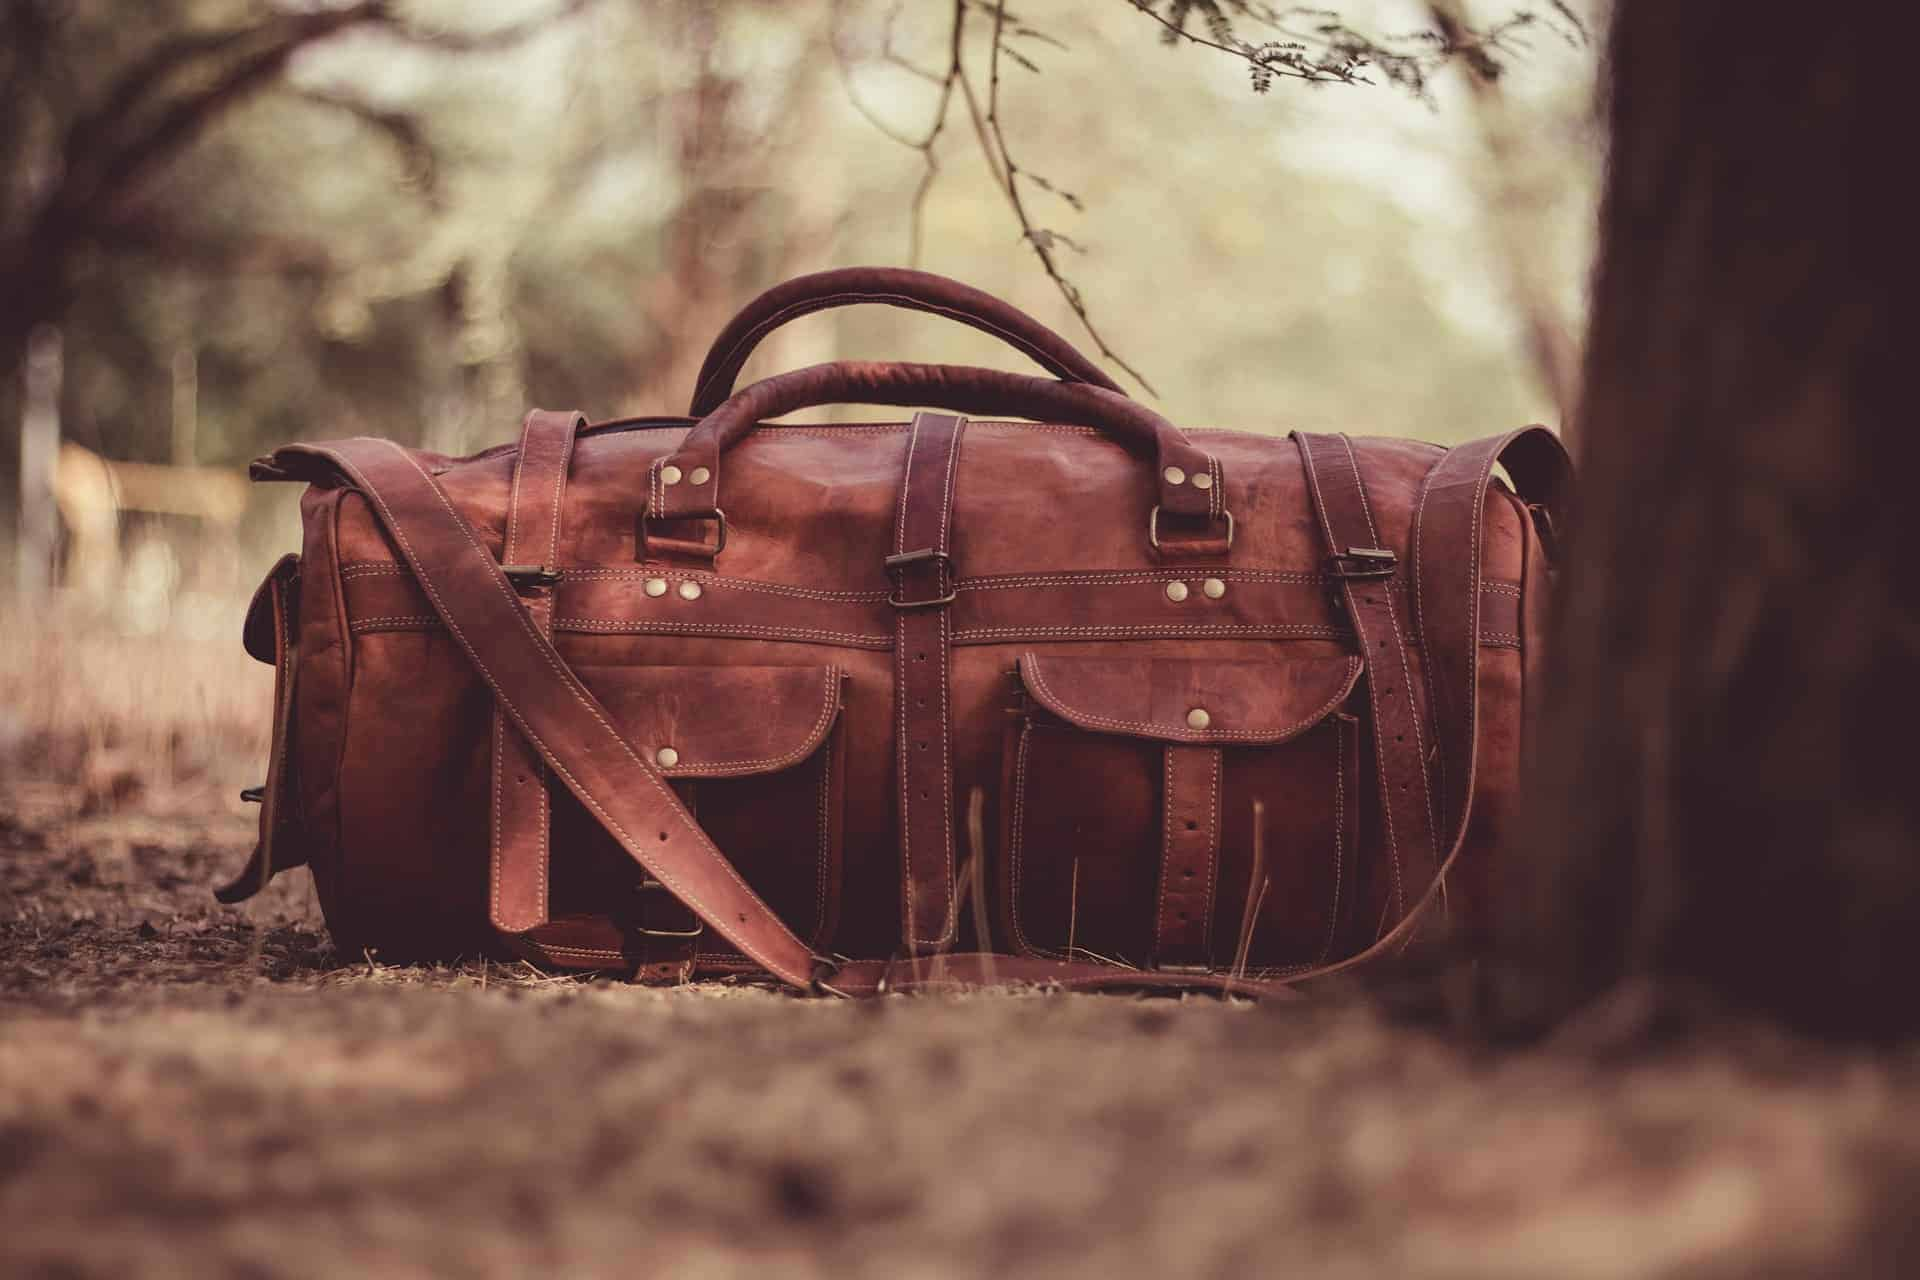 Grain Leather – Full Grain, Top Grain, You'll Know the Best